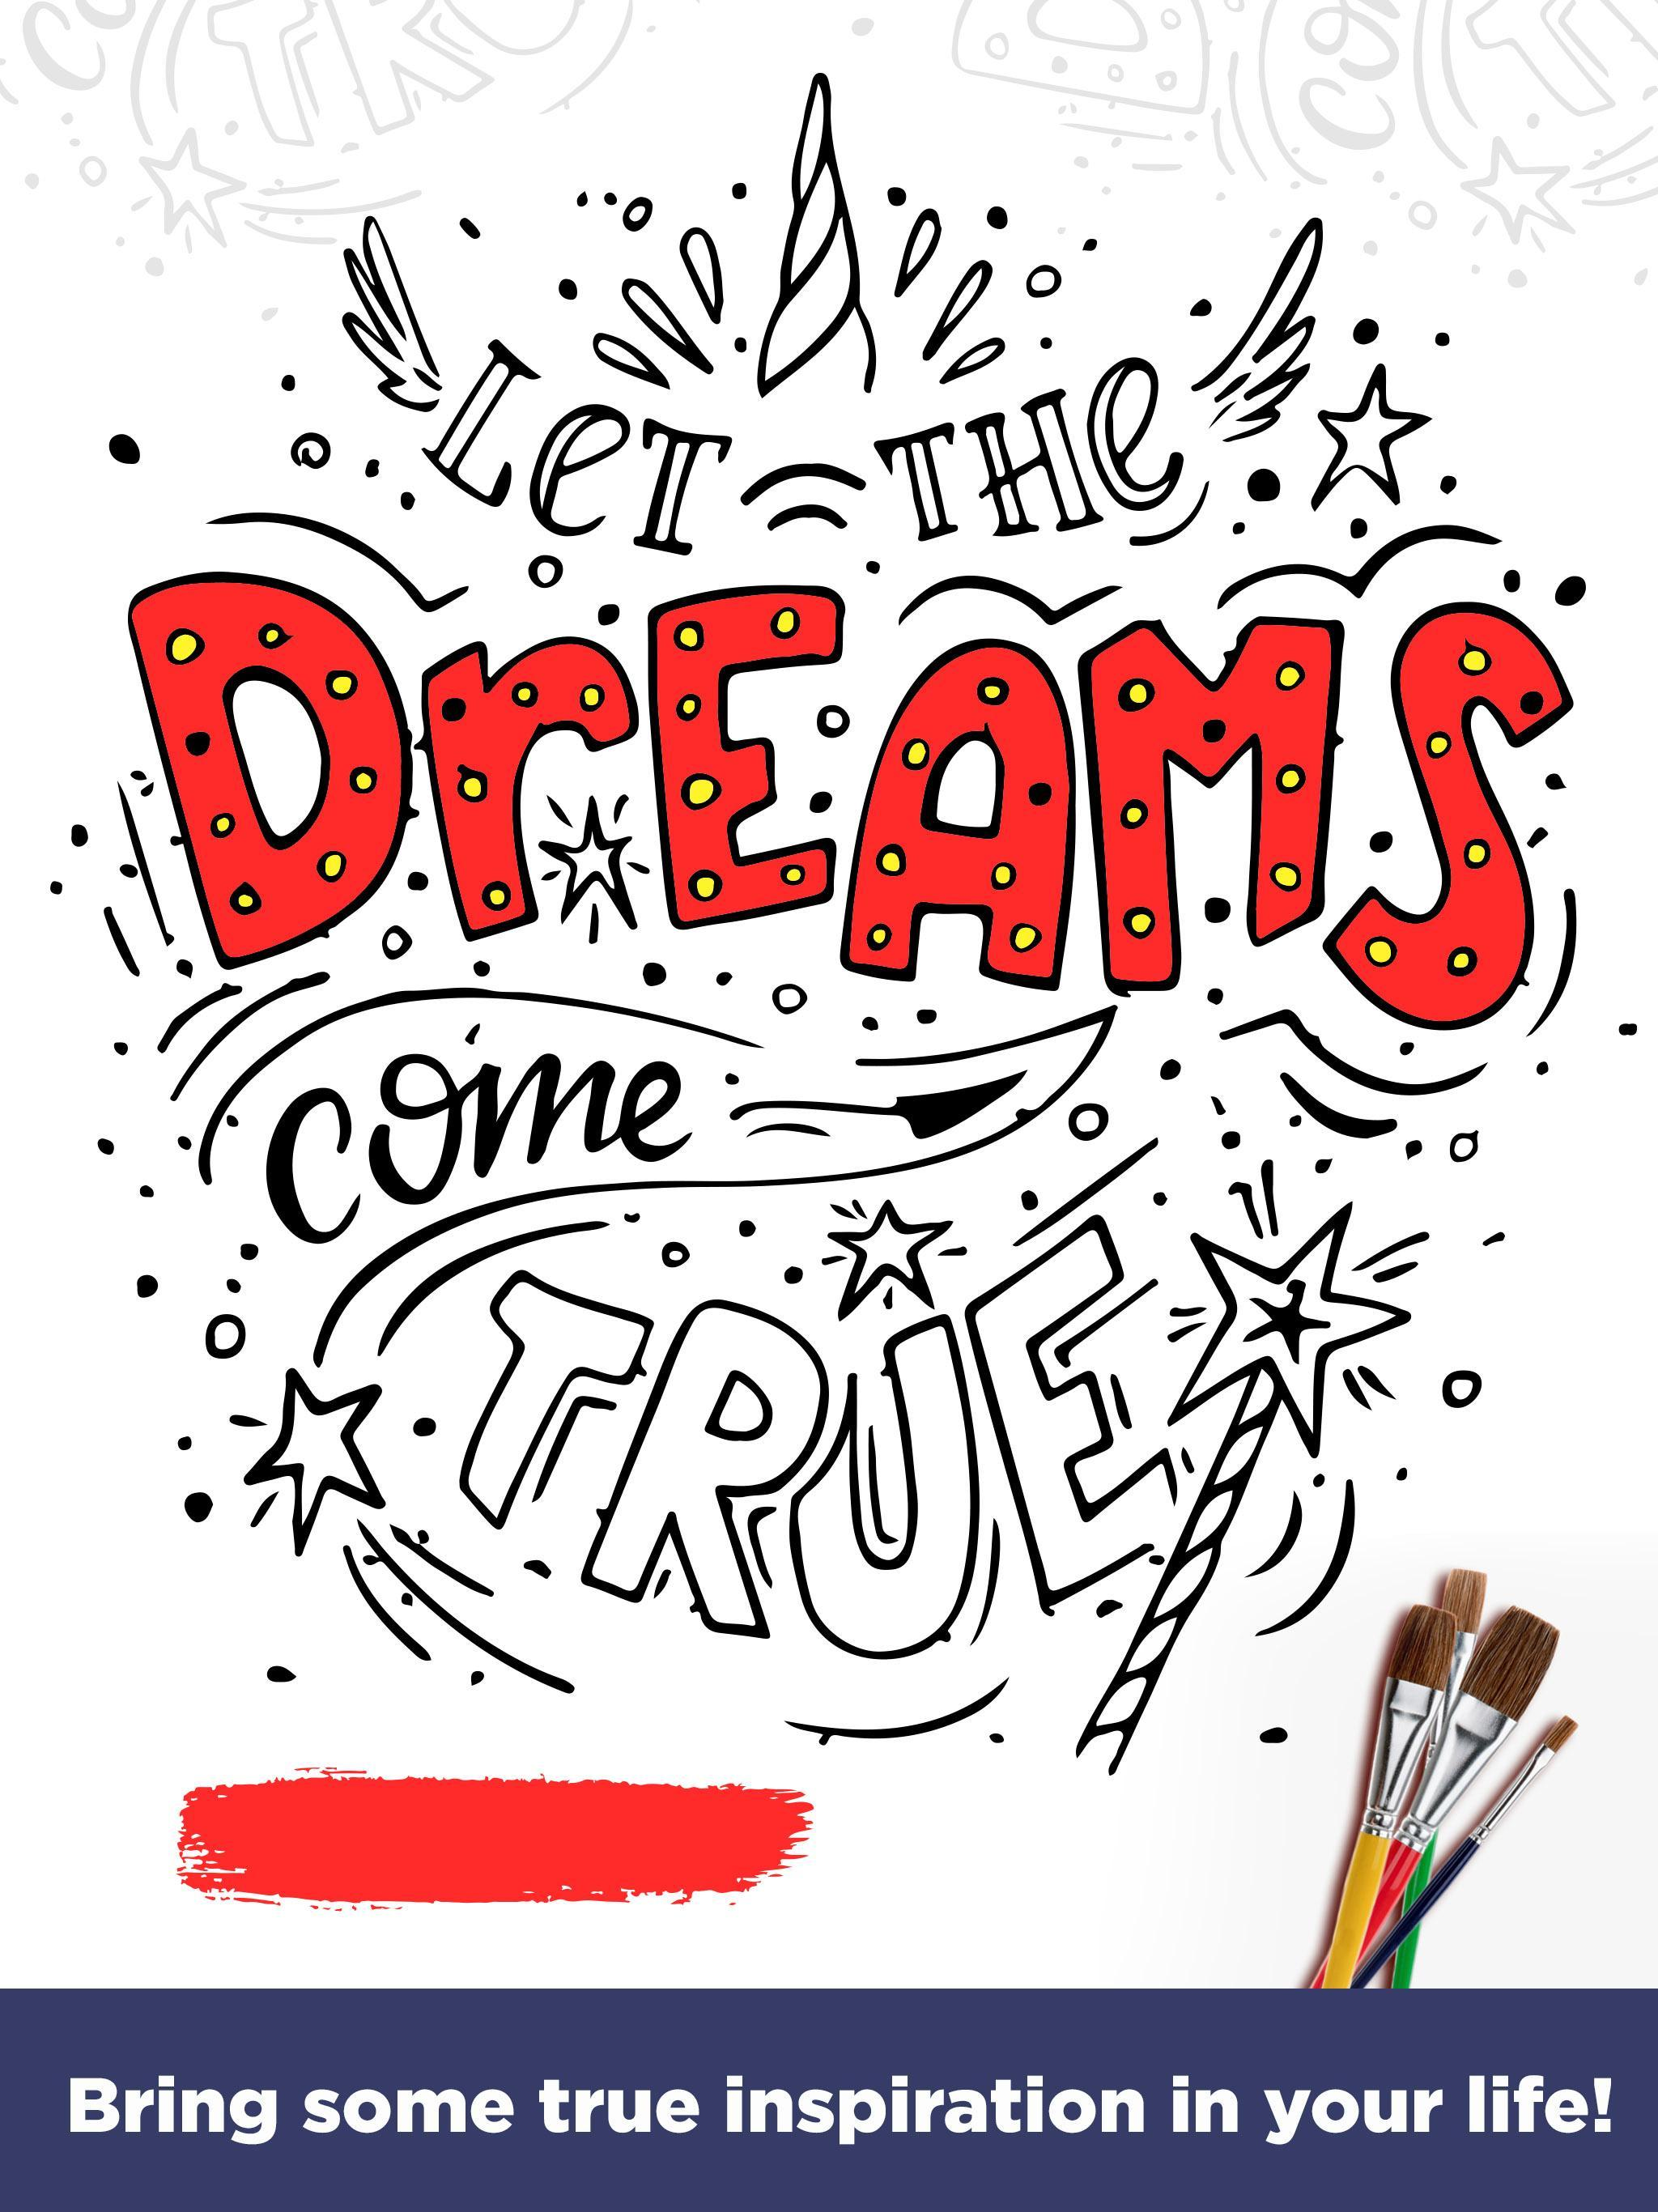 Inspirational Quotes Coloring Pages For Adults For Android Apk Download